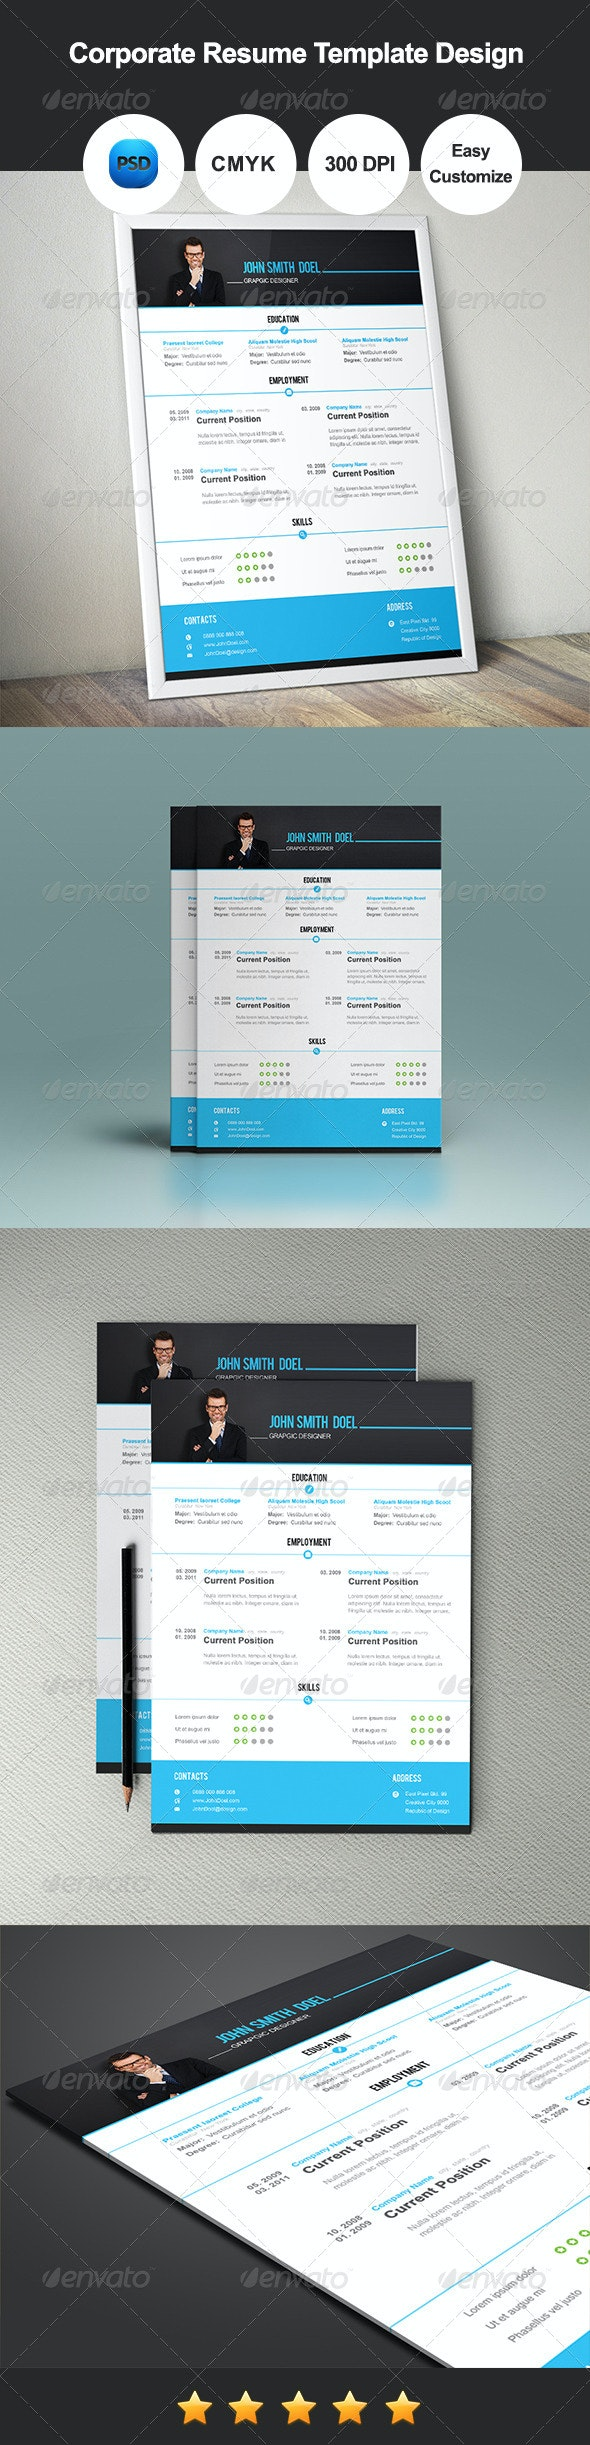 Corporate Resume Template Design - Resumes Stationery